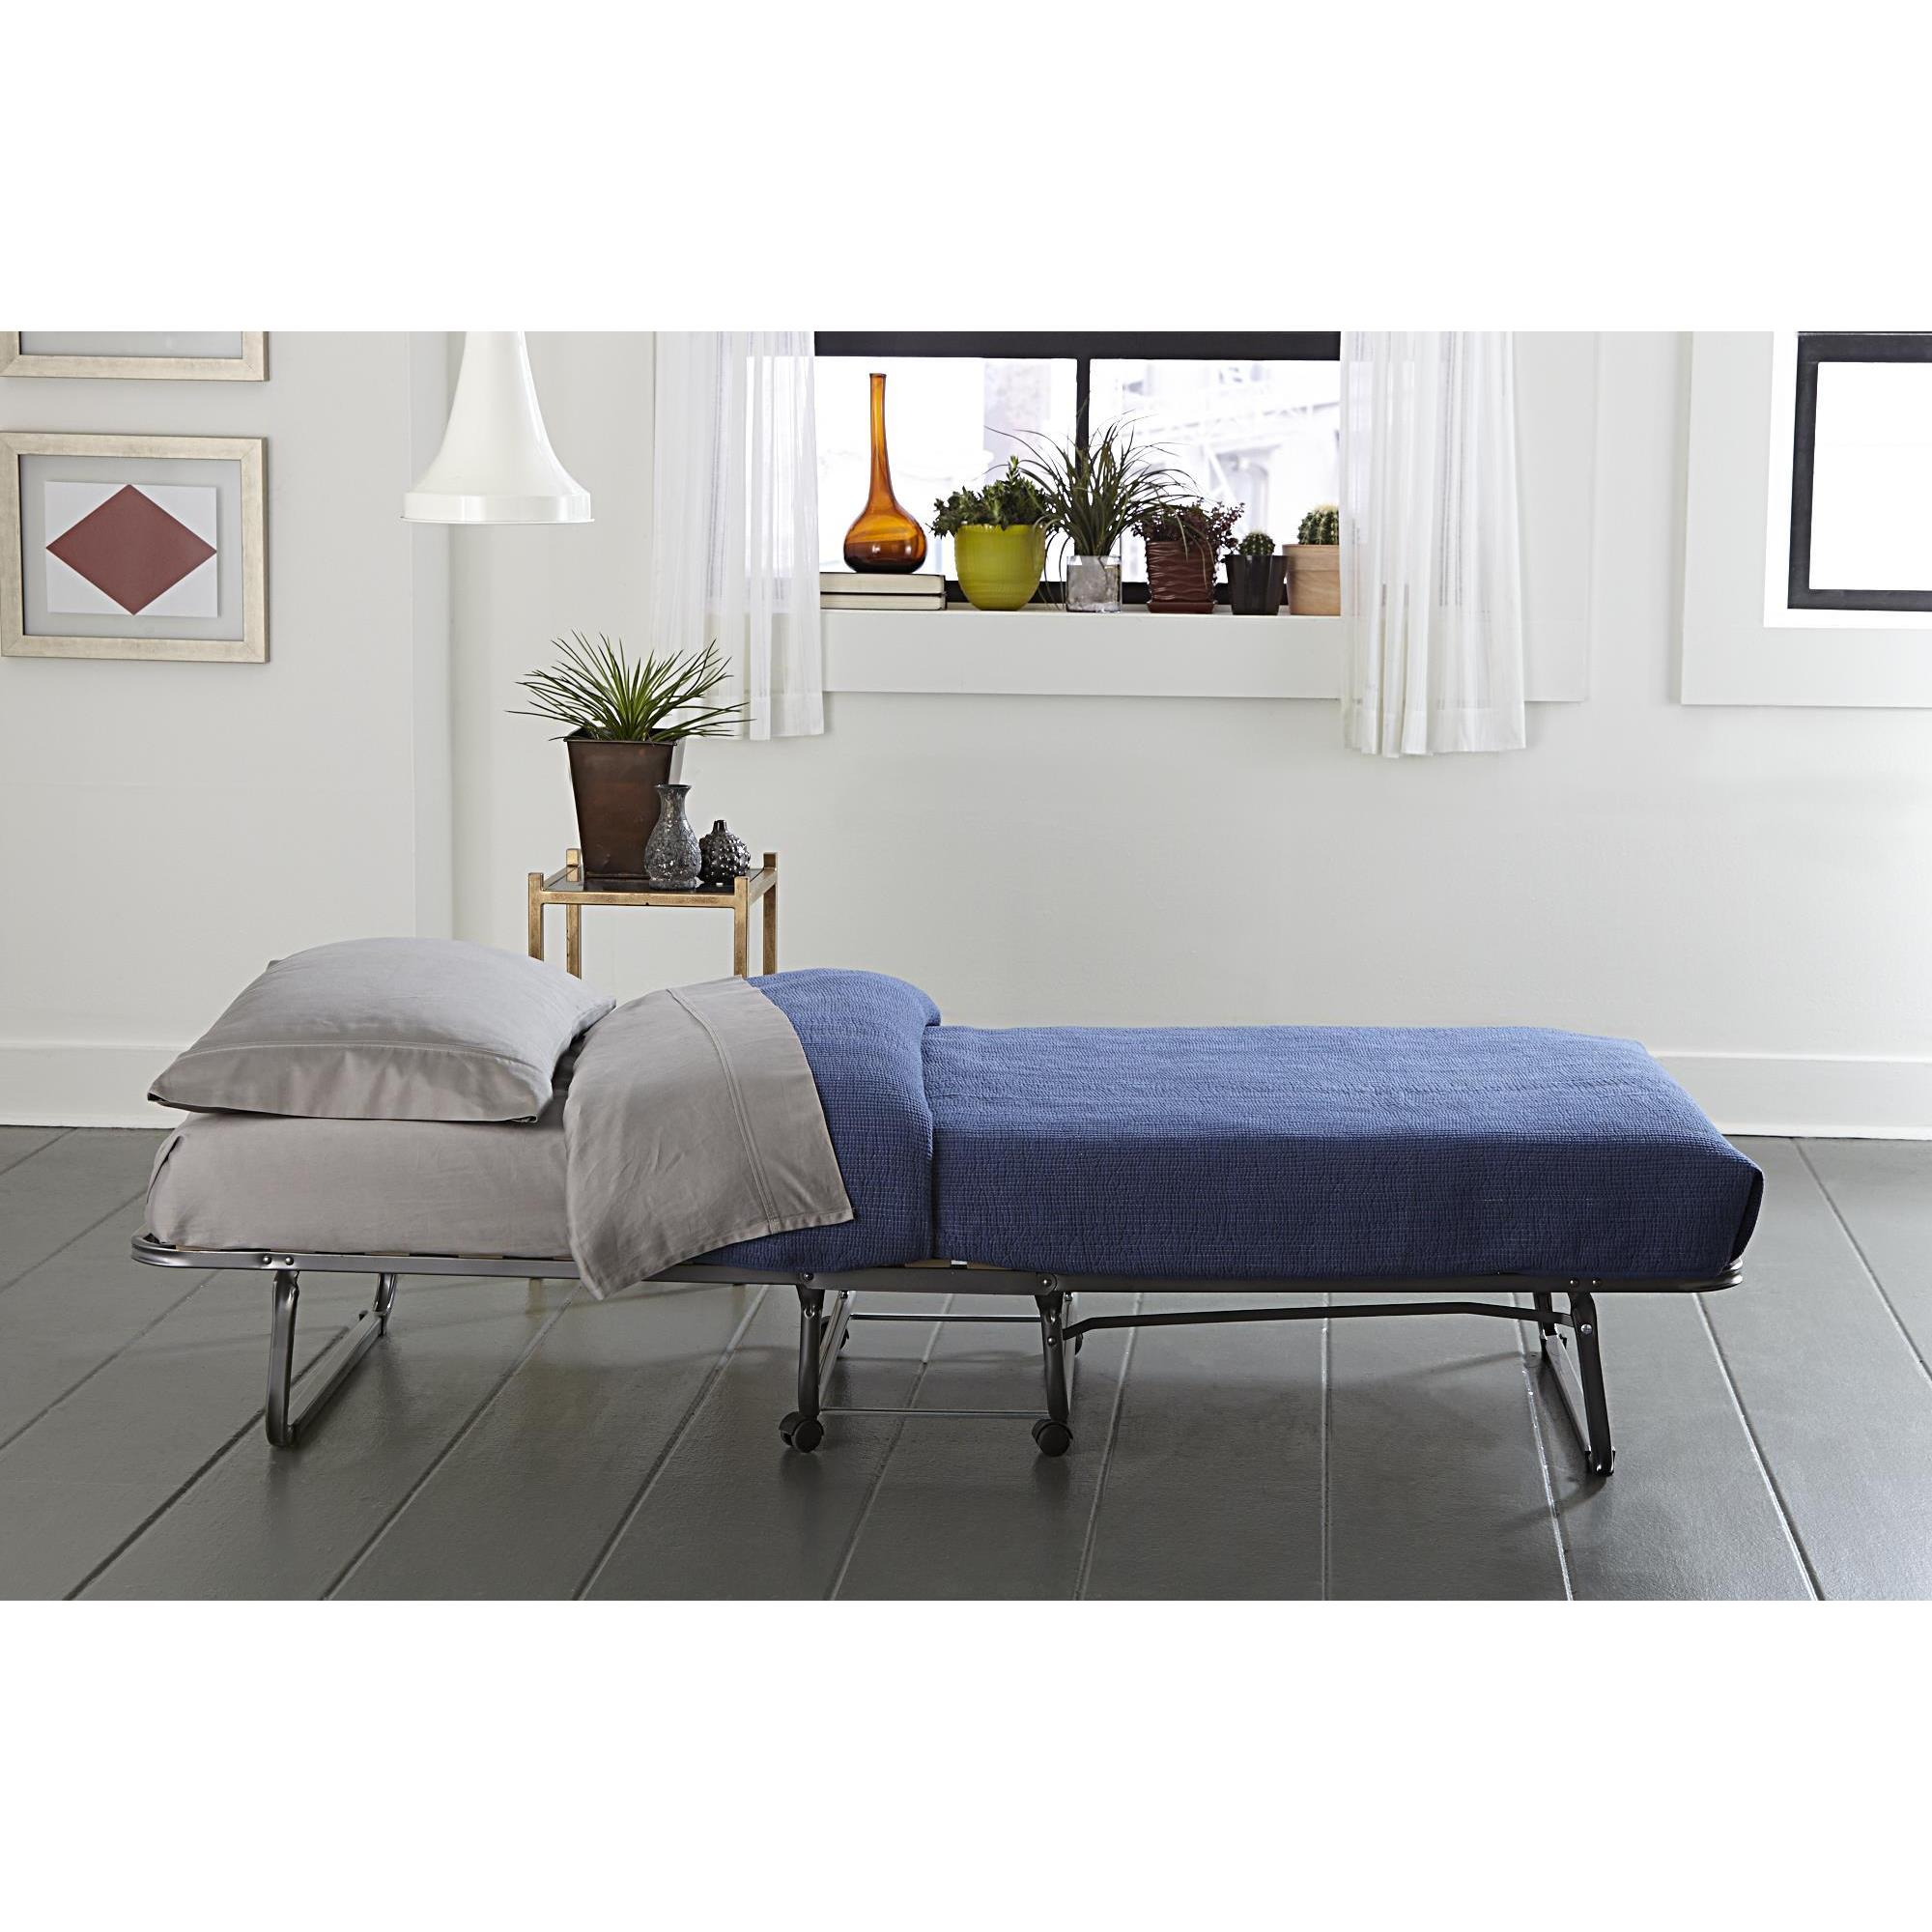 be aluminum amazon memory guest foam with mattress jay j frame dining bed dp folding and kitchen com